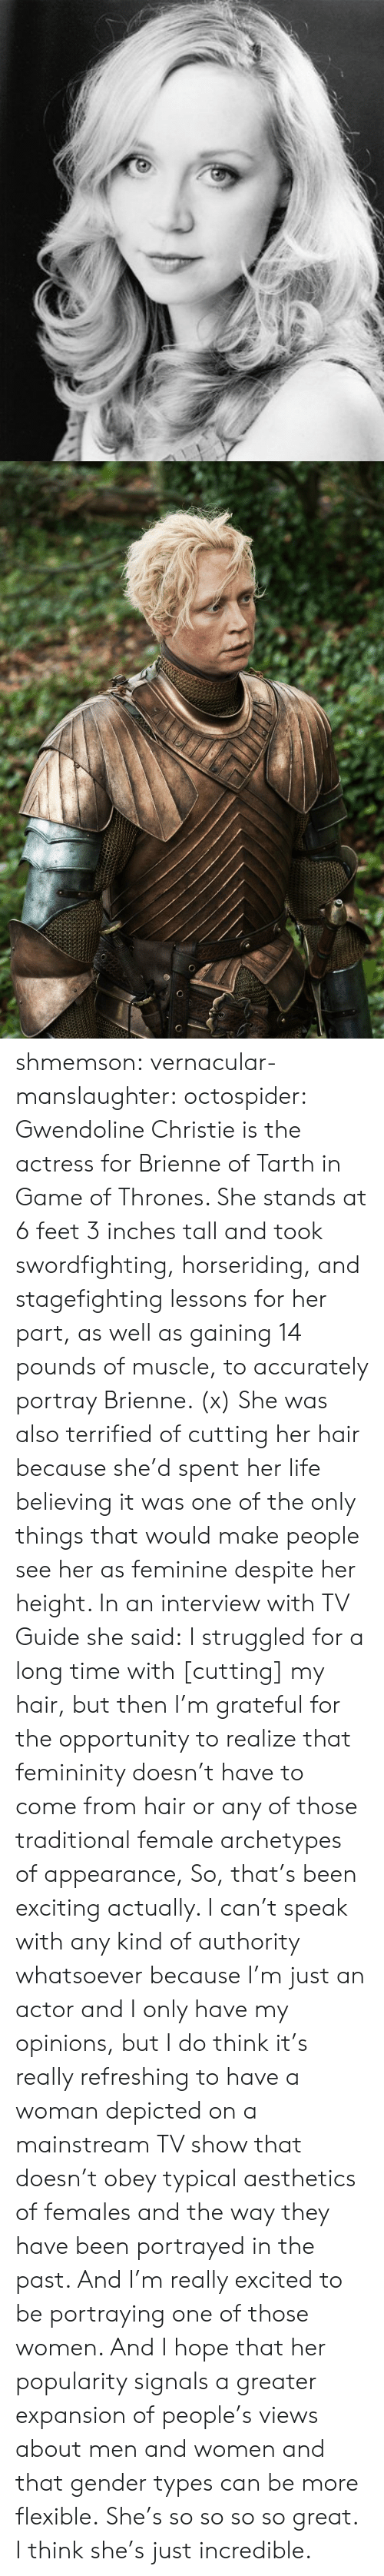 mainstream: shmemson:  vernacular-manslaughter:  octospider:  Gwendoline Christie is the actress for Brienne of Tarth in Game of Thrones. She stands at 6 feet 3 inches tall and took swordfighting, horseriding, and stagefighting lessons for her part, as well as gaining 14 pounds of muscle, to accurately portray Brienne. (x)  She was also terrified of cutting her hair because she'd spent her life believing it was one of the only things that would make people see her as feminine despite her height. In an interview with TV Guide she said: I struggled for a long time with [cutting] my hair, but then I'm grateful for the opportunity to realize that femininity doesn't have to come from hair or any of those traditional female archetypes of appearance, So, that's been exciting actually. I can't speak with any kind of authority whatsoever because I'm just an actor and I only have my opinions, but I do think it's really refreshing to have a woman depicted on a mainstream TV show that doesn't obey typical aesthetics of females and the way they have been portrayed in the past. And I'm really excited to be portraying one of those women. And I hope that her popularity signals a greater expansion of people's views about men and women and that gender types can be more flexible.  She's so so so so great. I think she's just incredible.